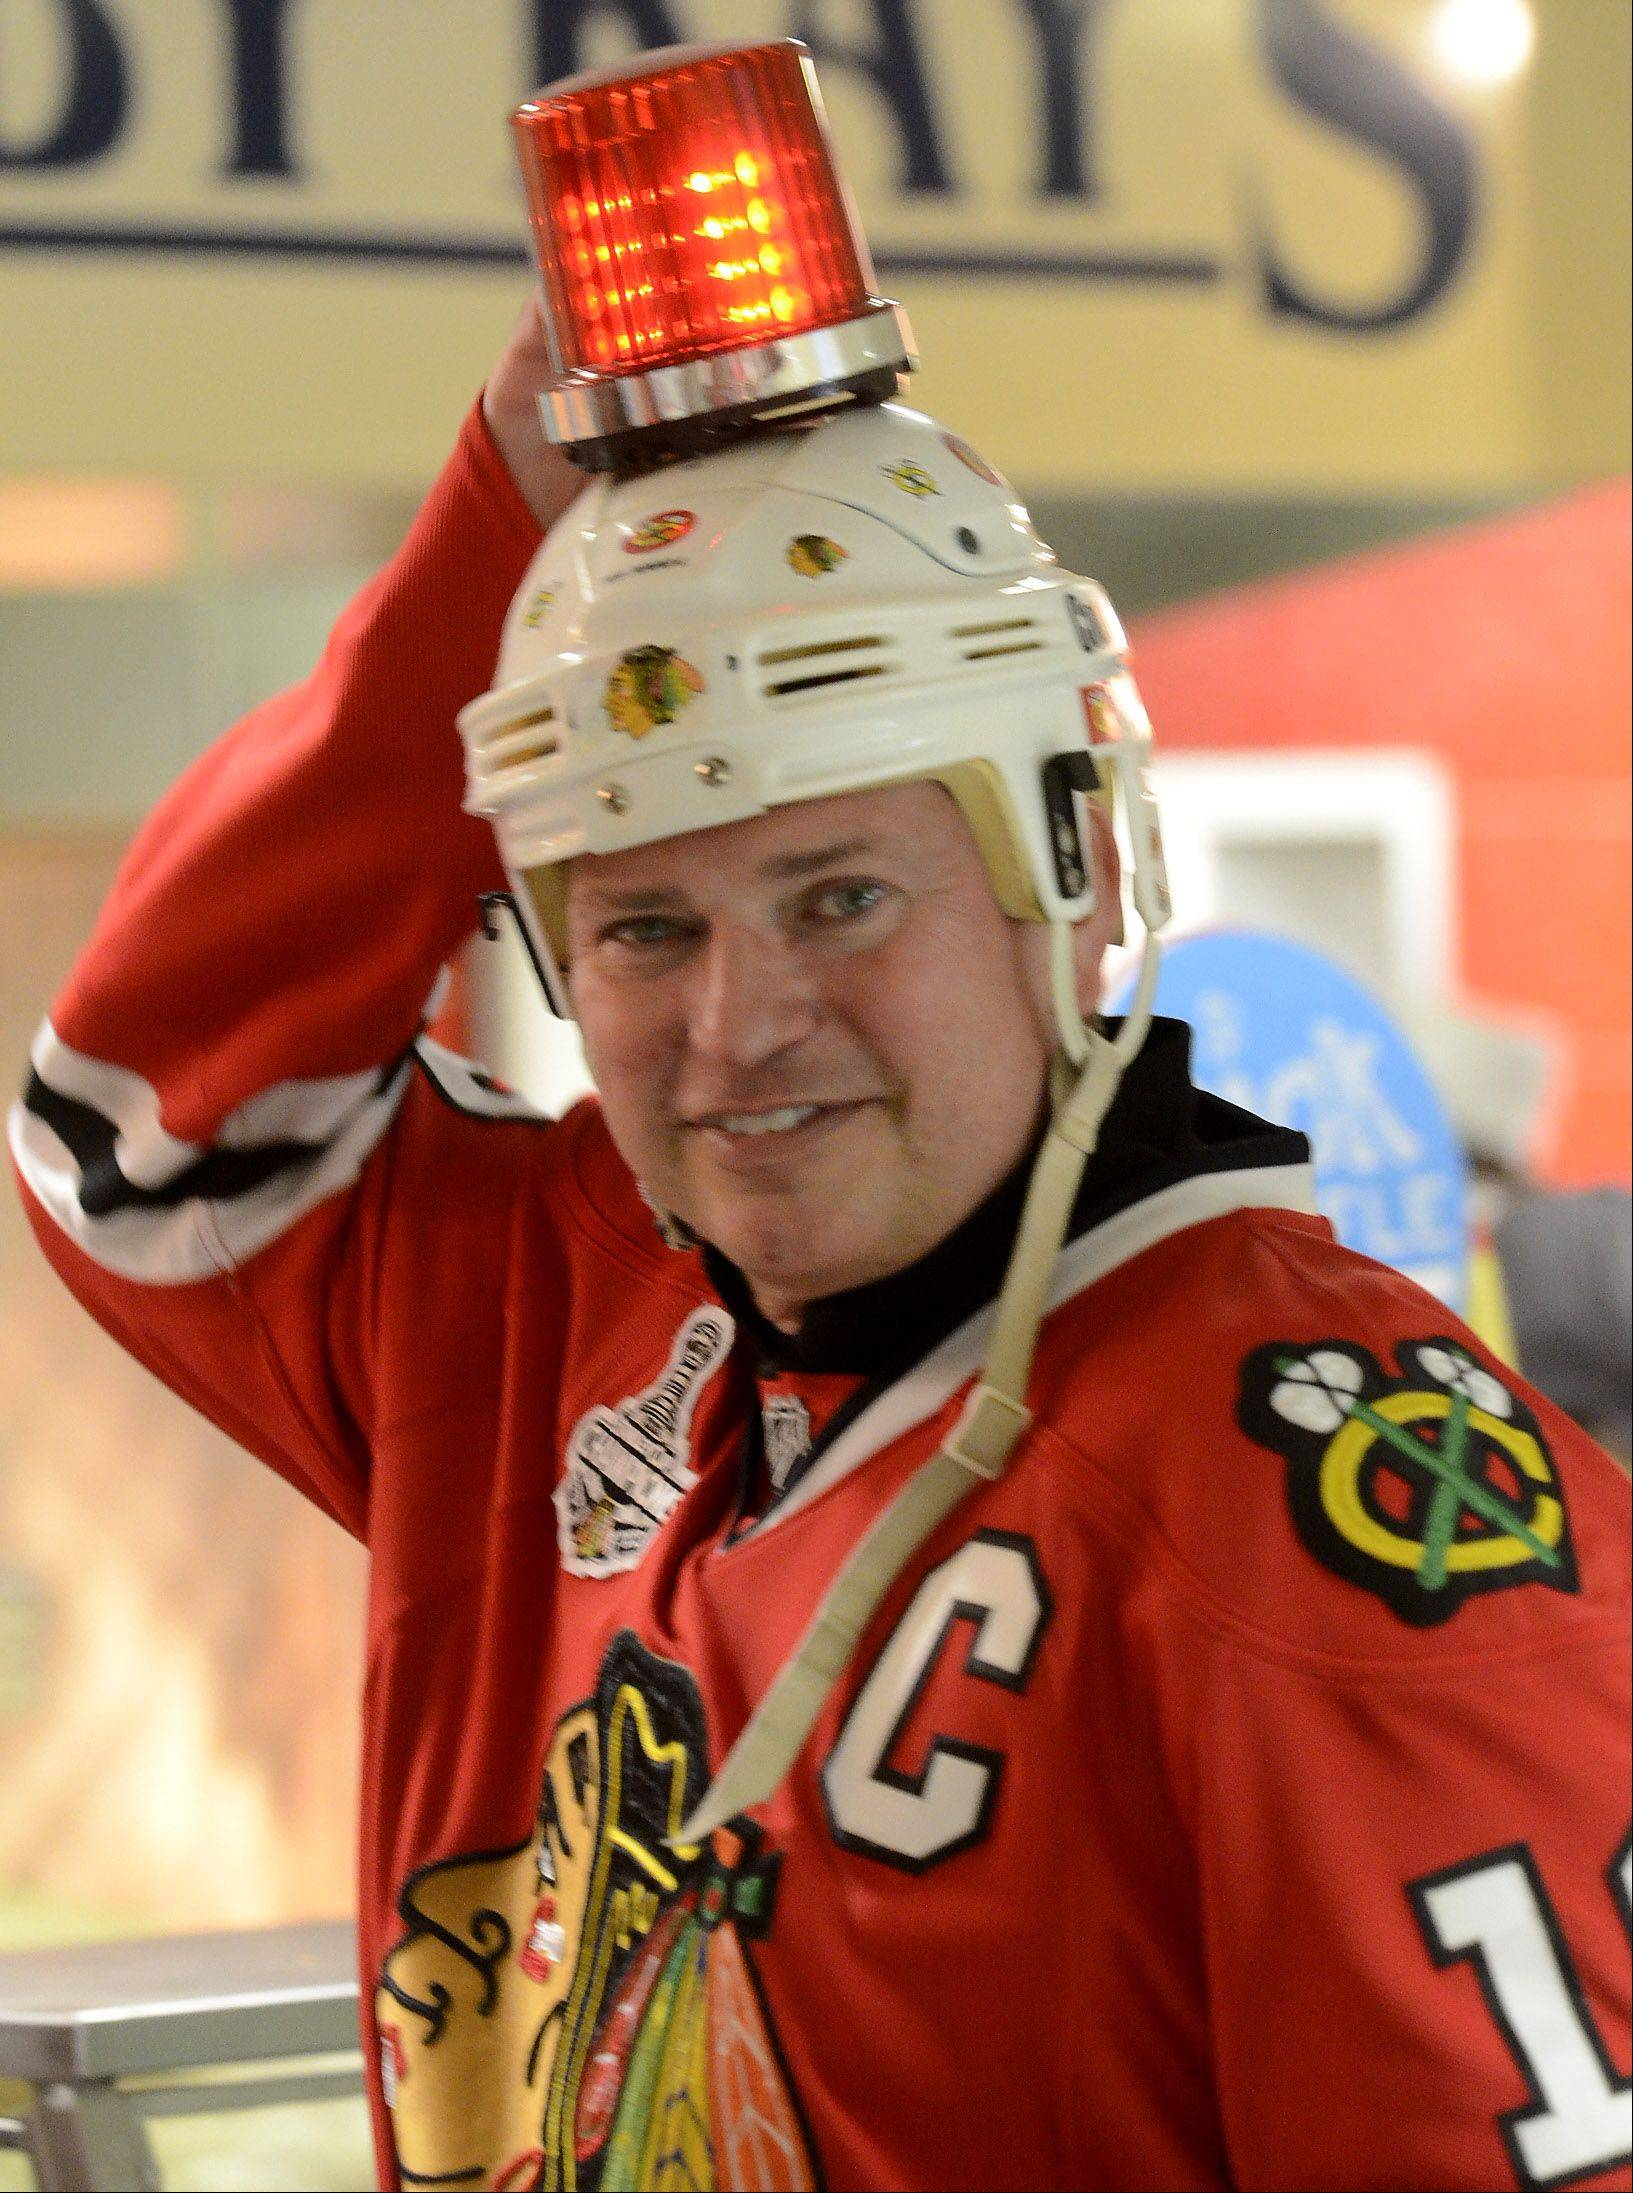 Rich Kiel of Chicago checks his goal lamp before Game 1 of the Western Conference semifinals between the Blackhawks and the Detroit Red Wings.